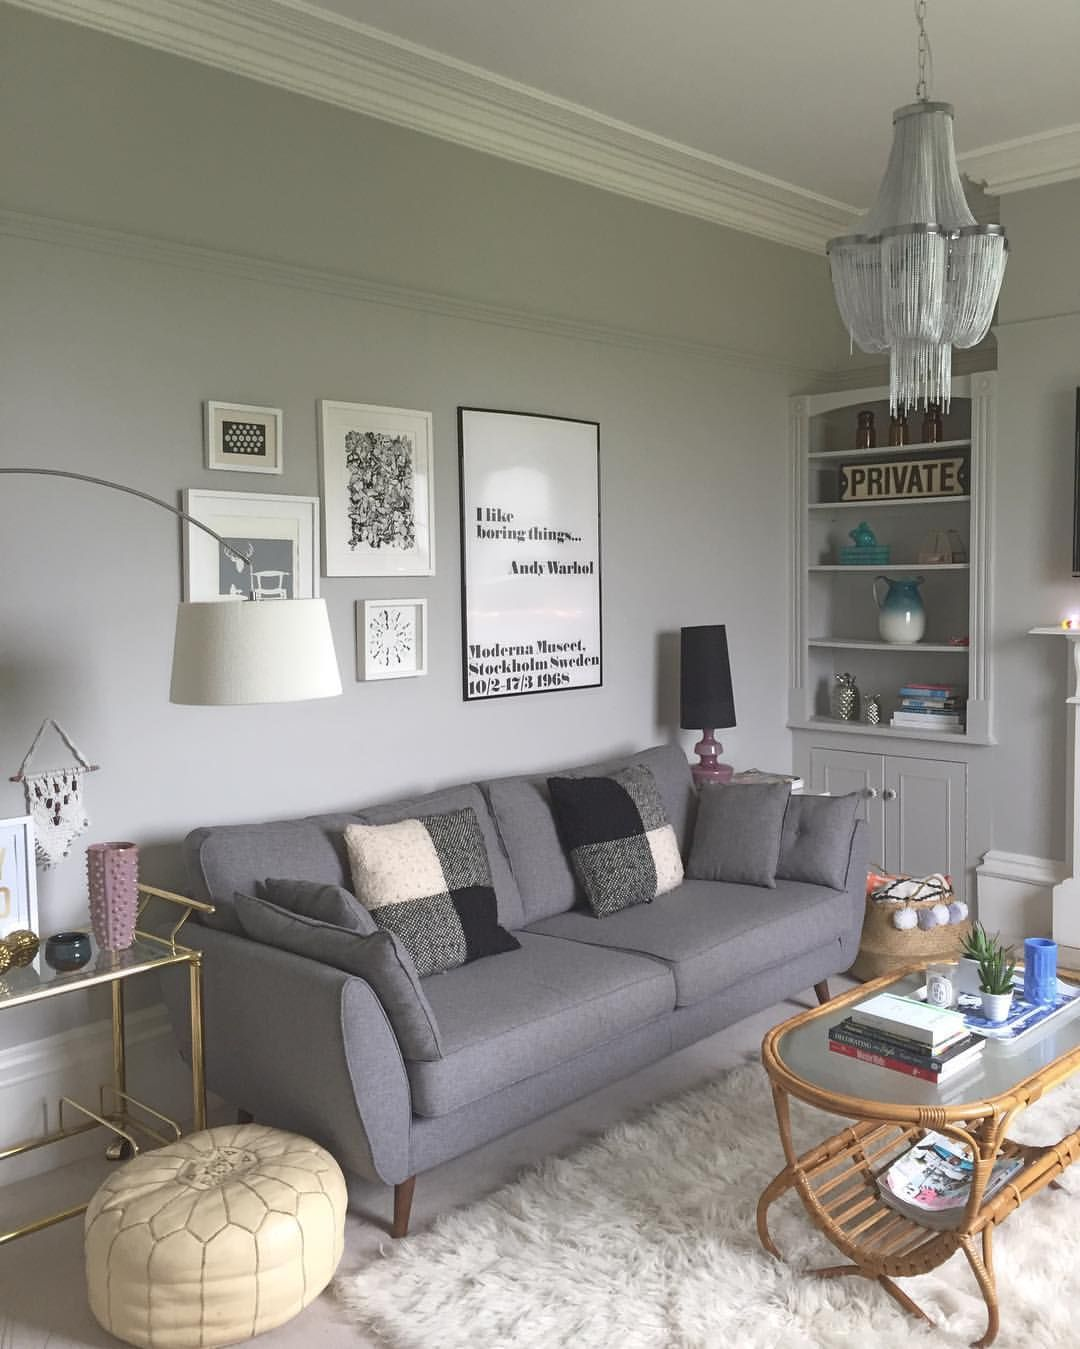 Pin By Jenny Bicker On New House Living Room Grey Living Room Decor Cozy Silver Living Room